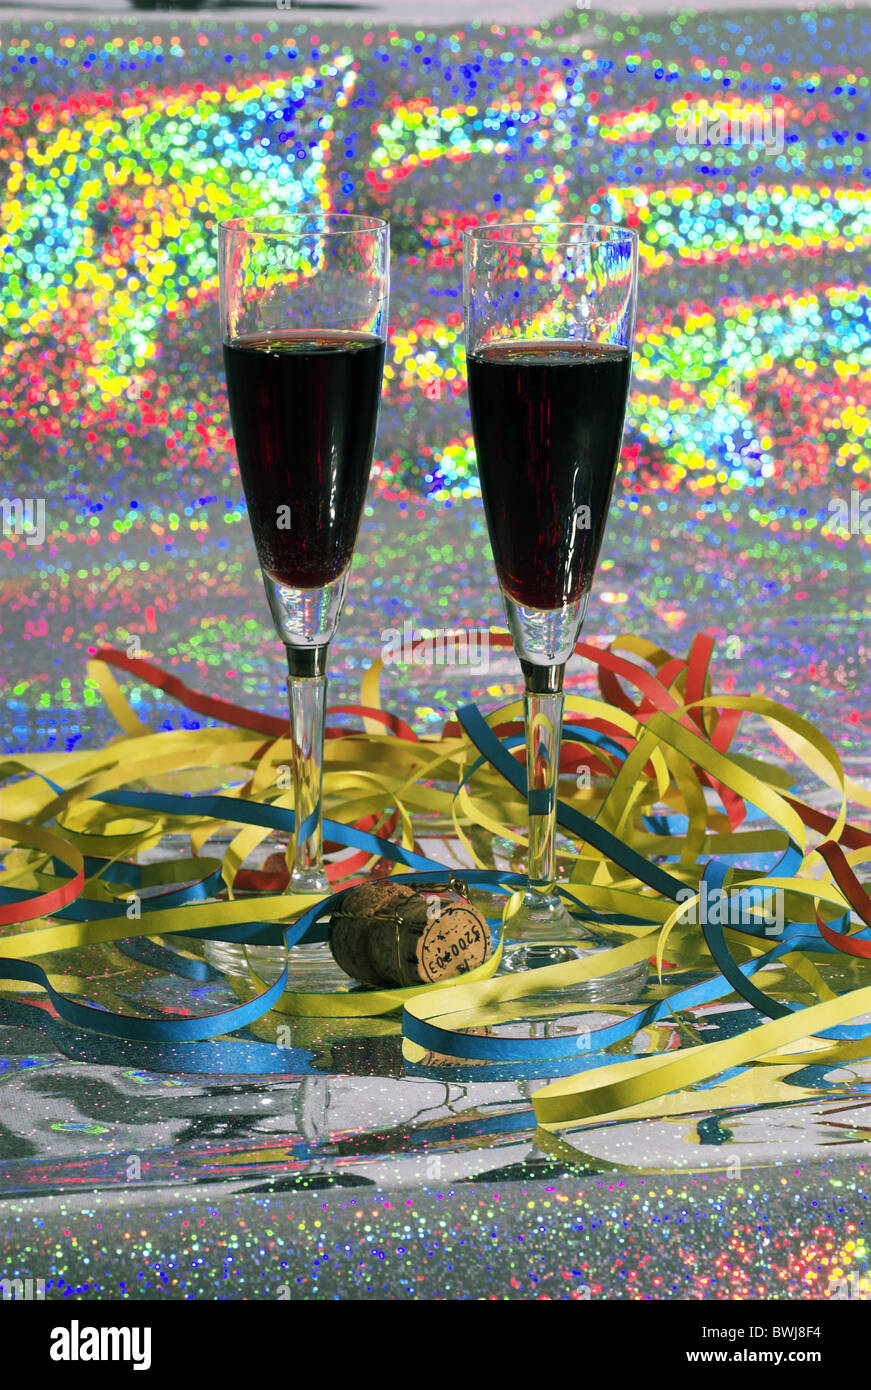 champagne glasses wine stumbling celebration celebrations streamers decoration adornment New Year Eve party - Stock Image